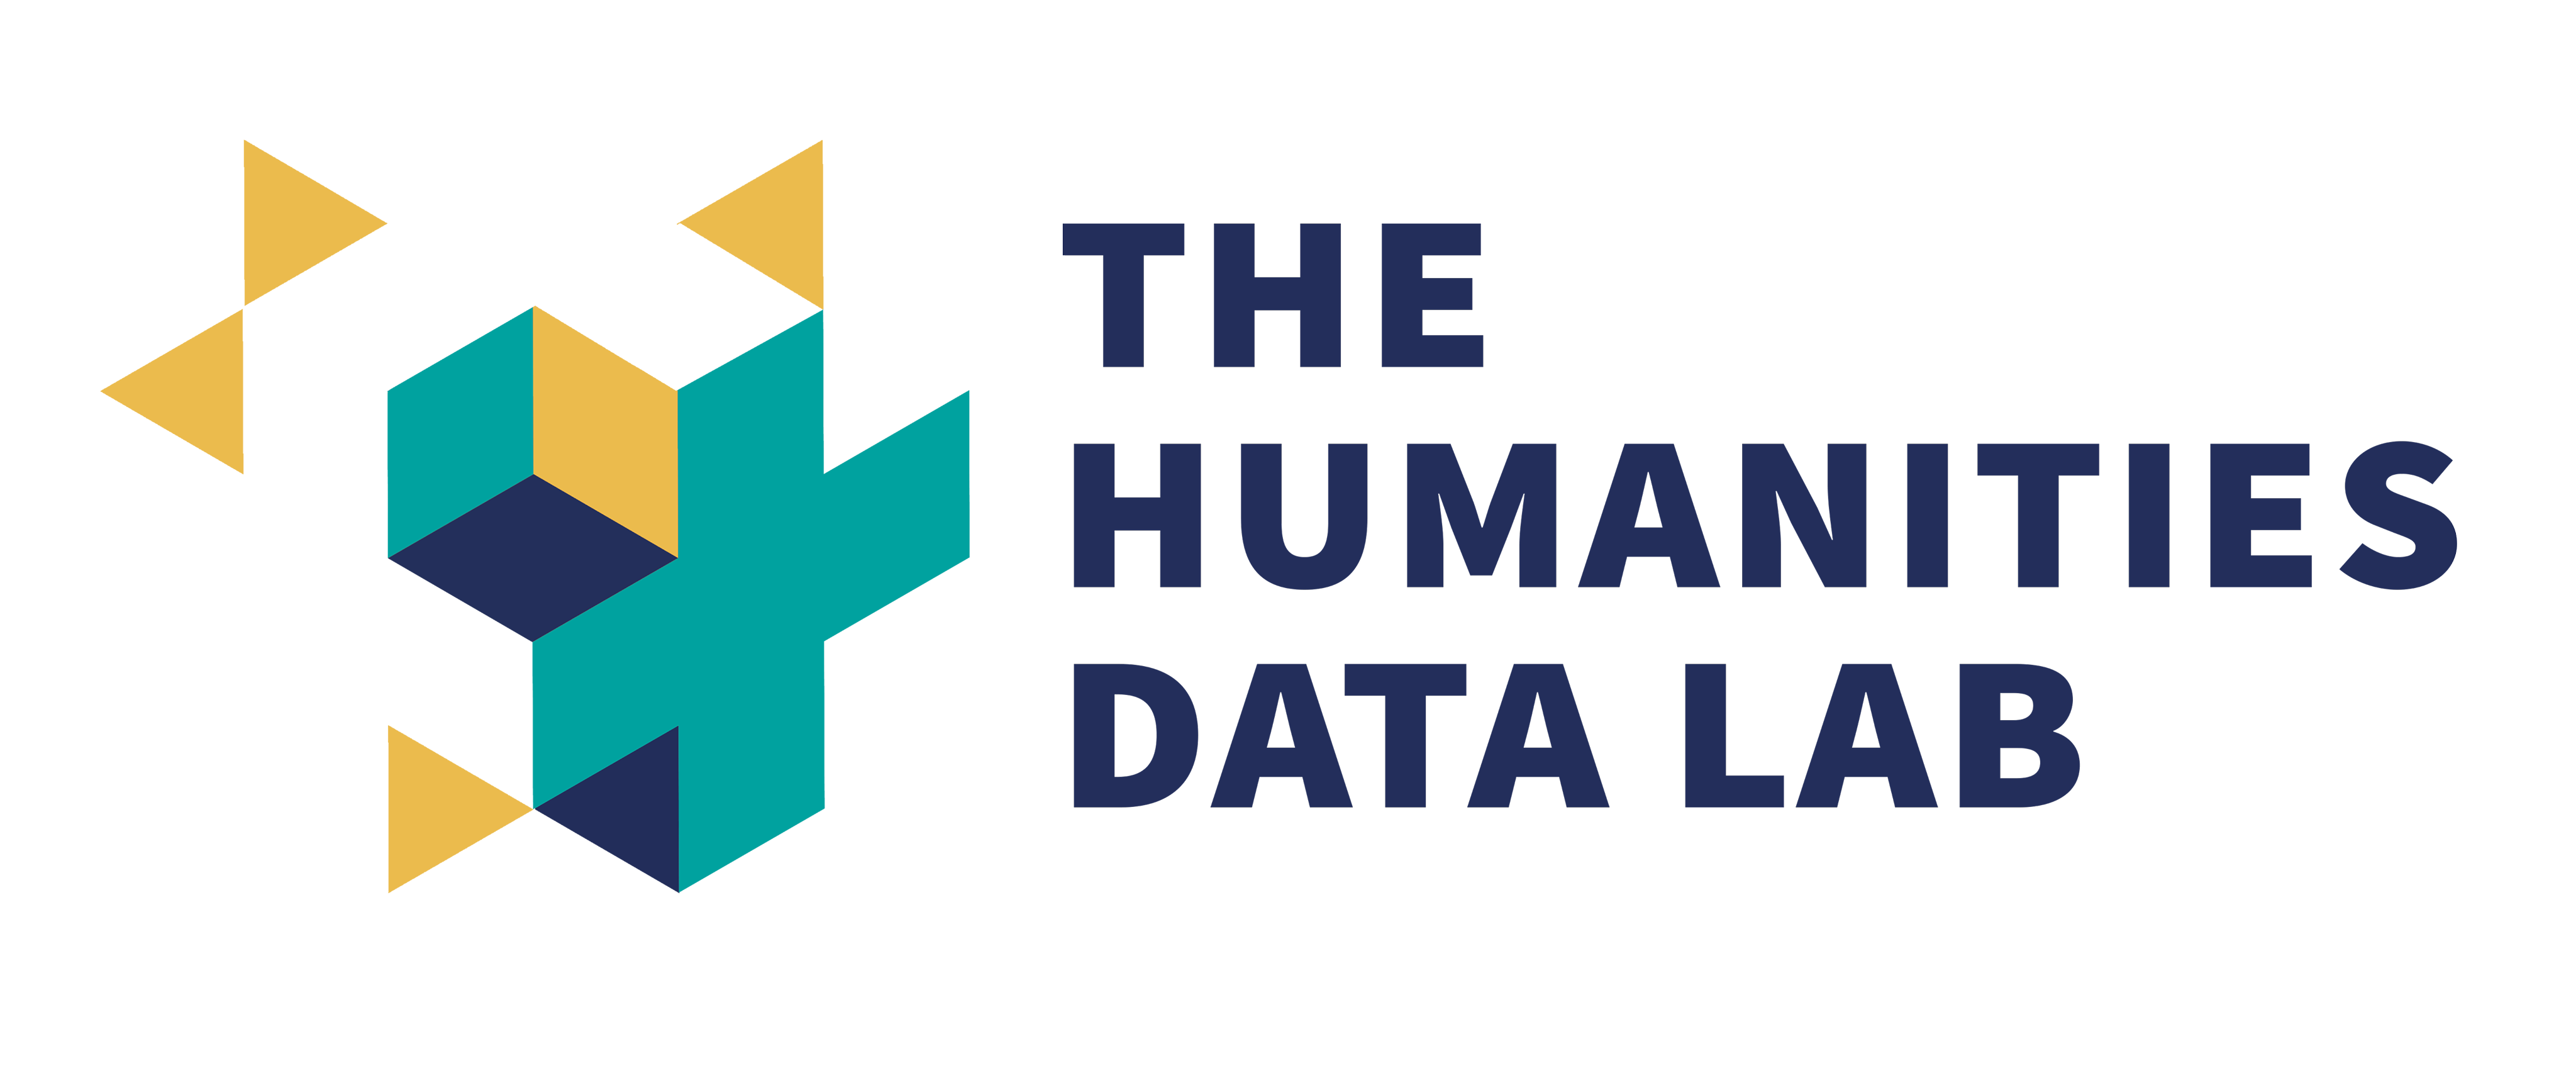 The Humanities + Data Lab